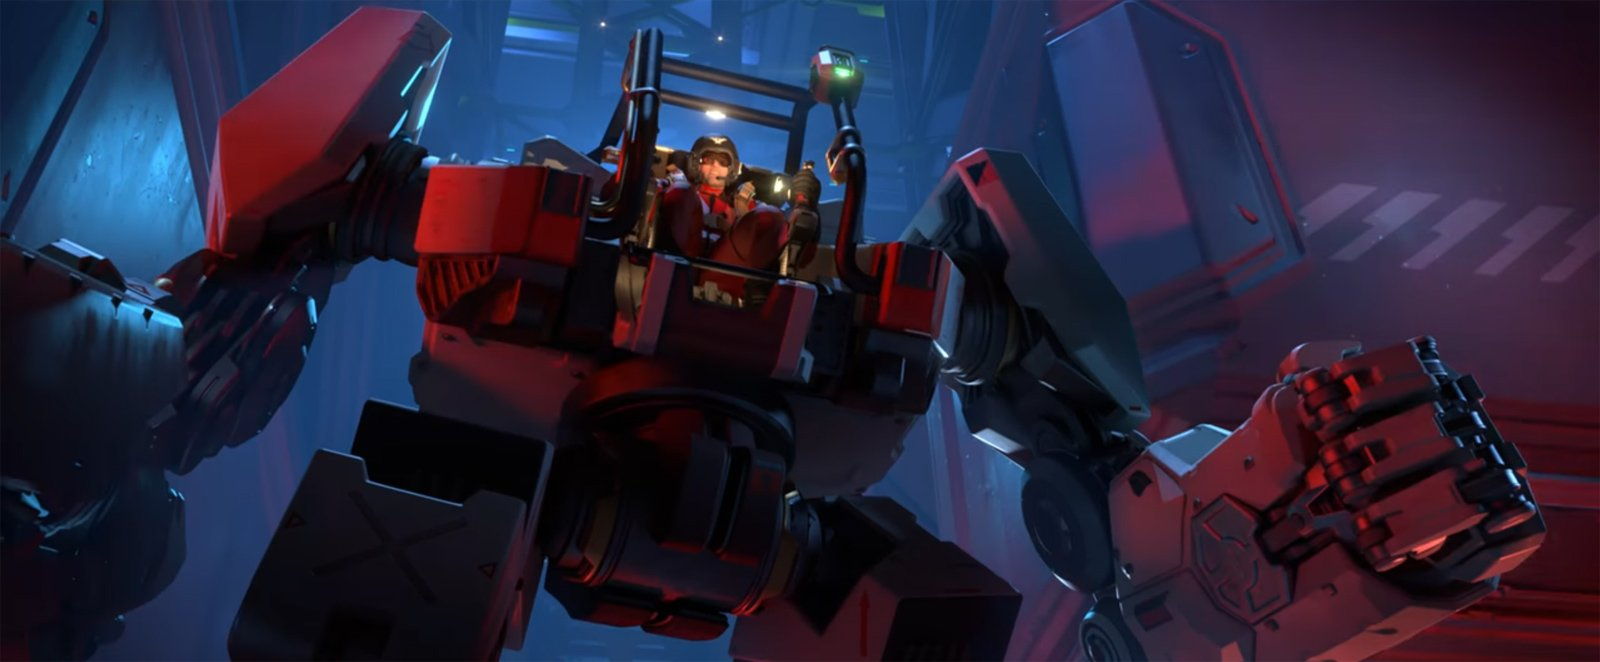 There will be more Overwatch shorts, but they 'take a long time' screenshot